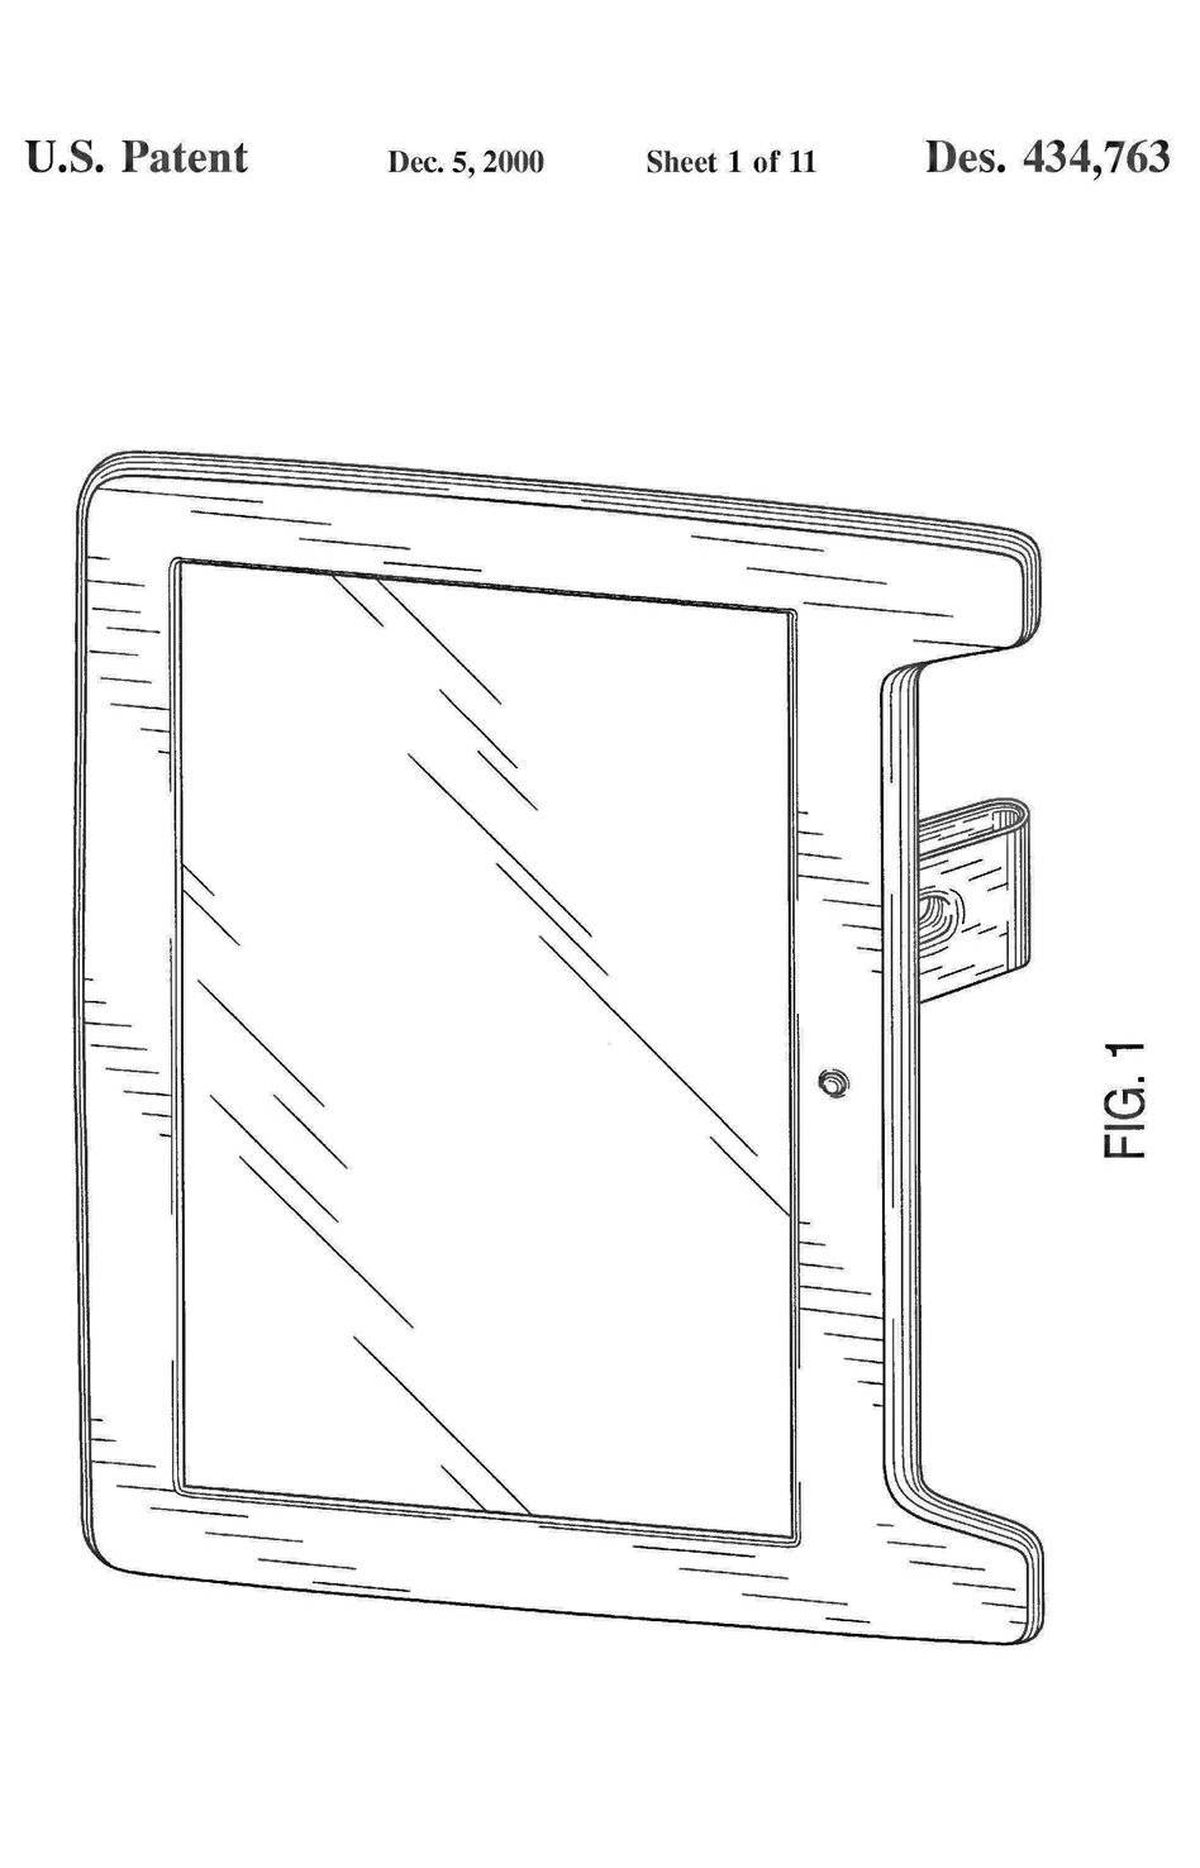 This series of patents spans cathode ray tubes and early flat-panel displays to Apple's current, sleek monitors.